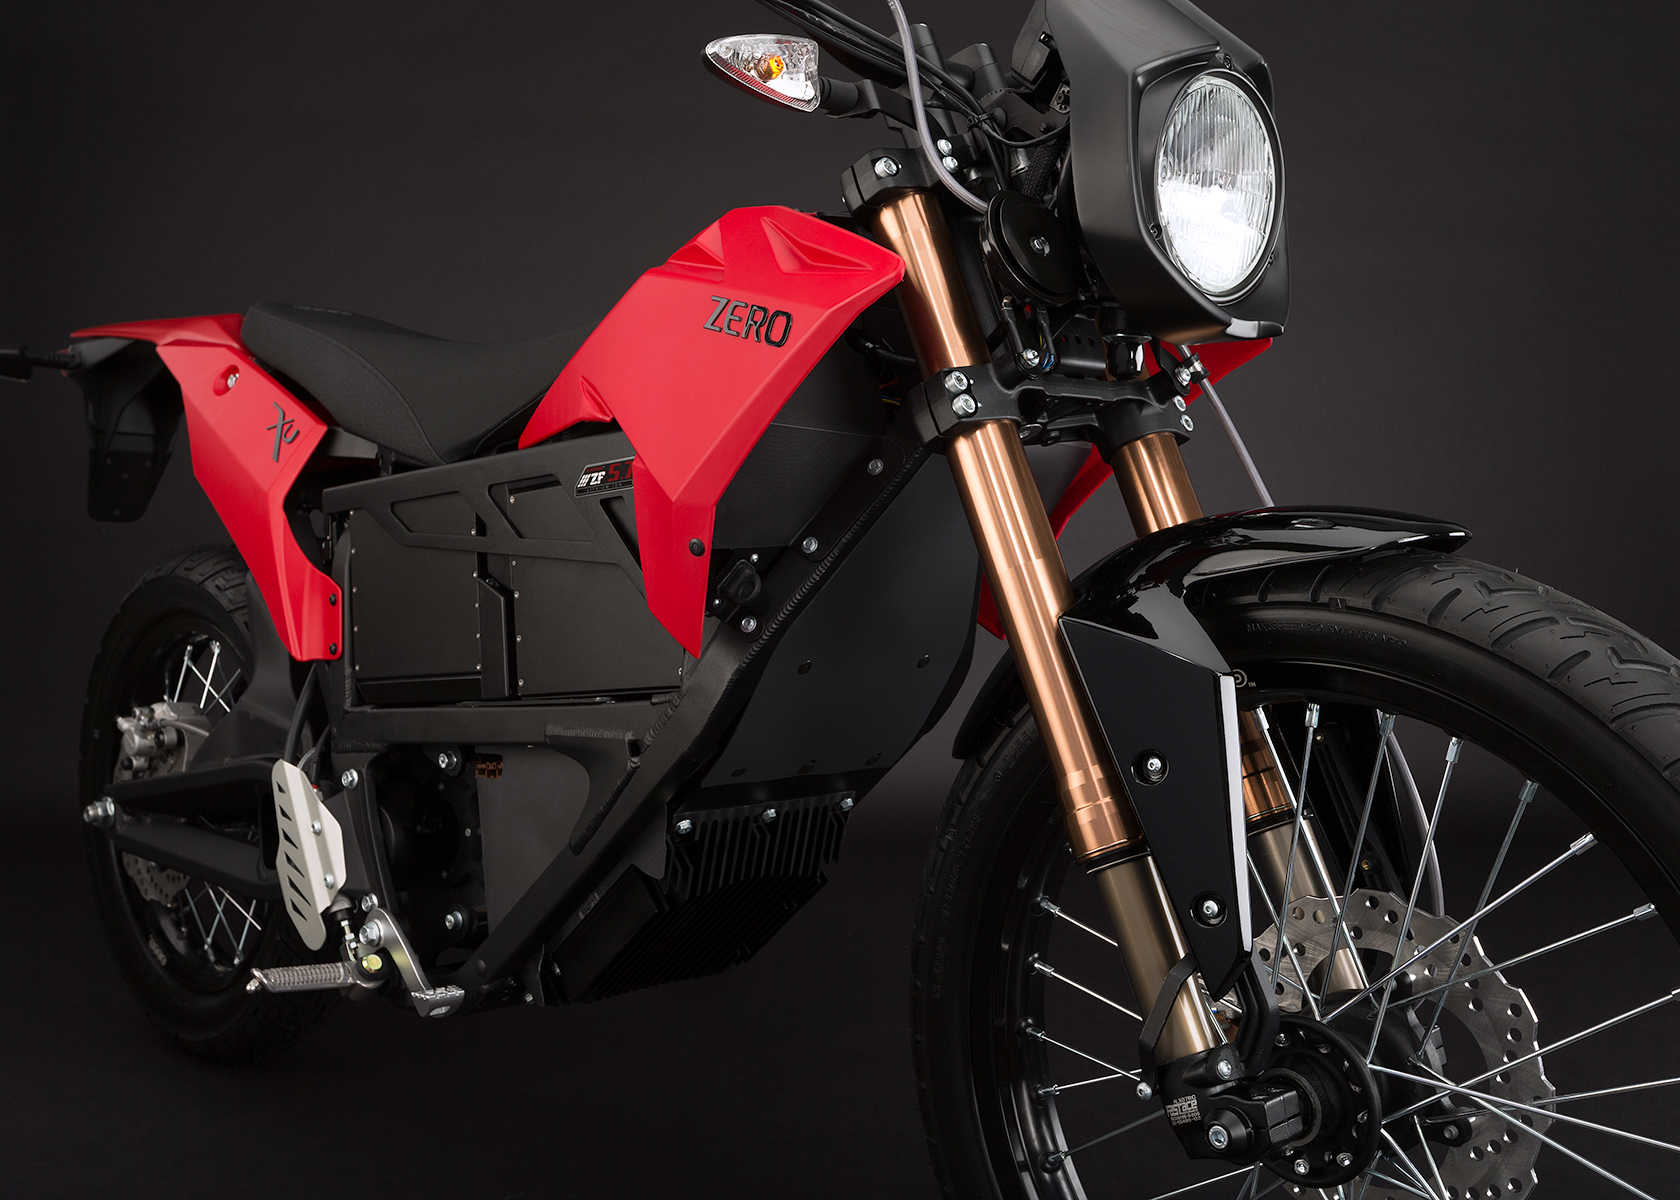 '.2013 Zero XU Electric Motorcycle: Front Fork.'